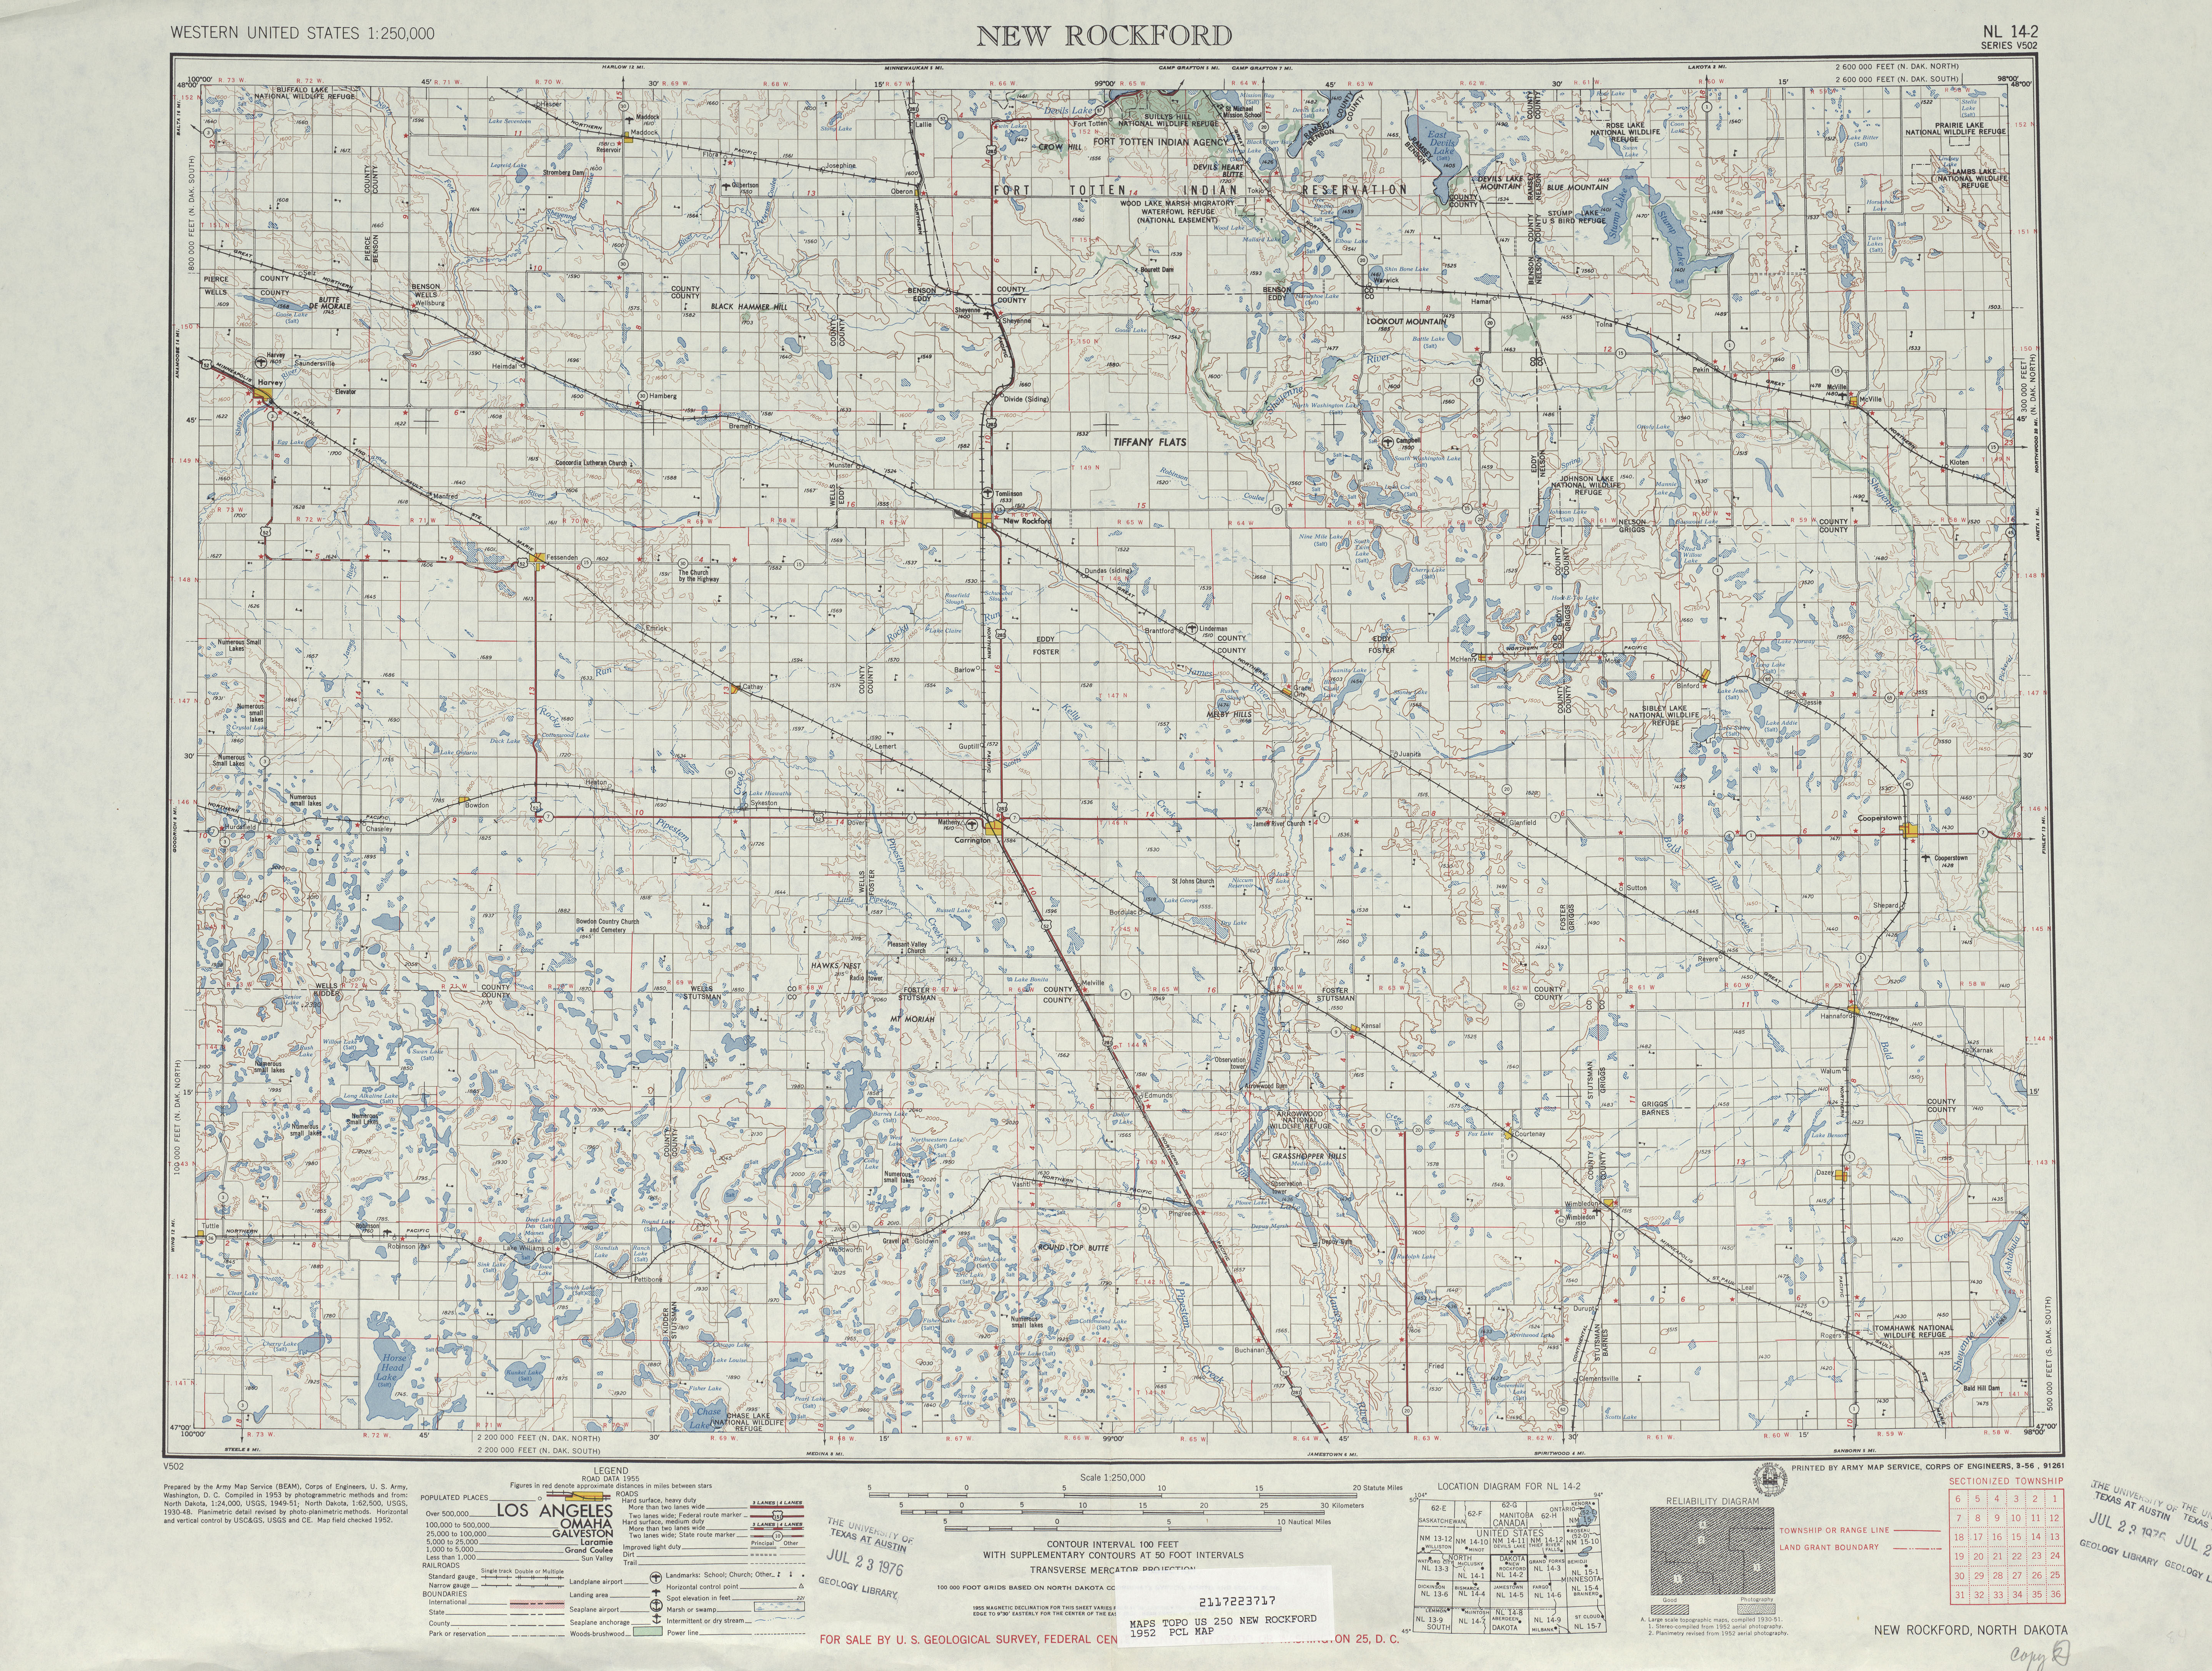 New Rockford Topographic Map Sheet, United States 1952